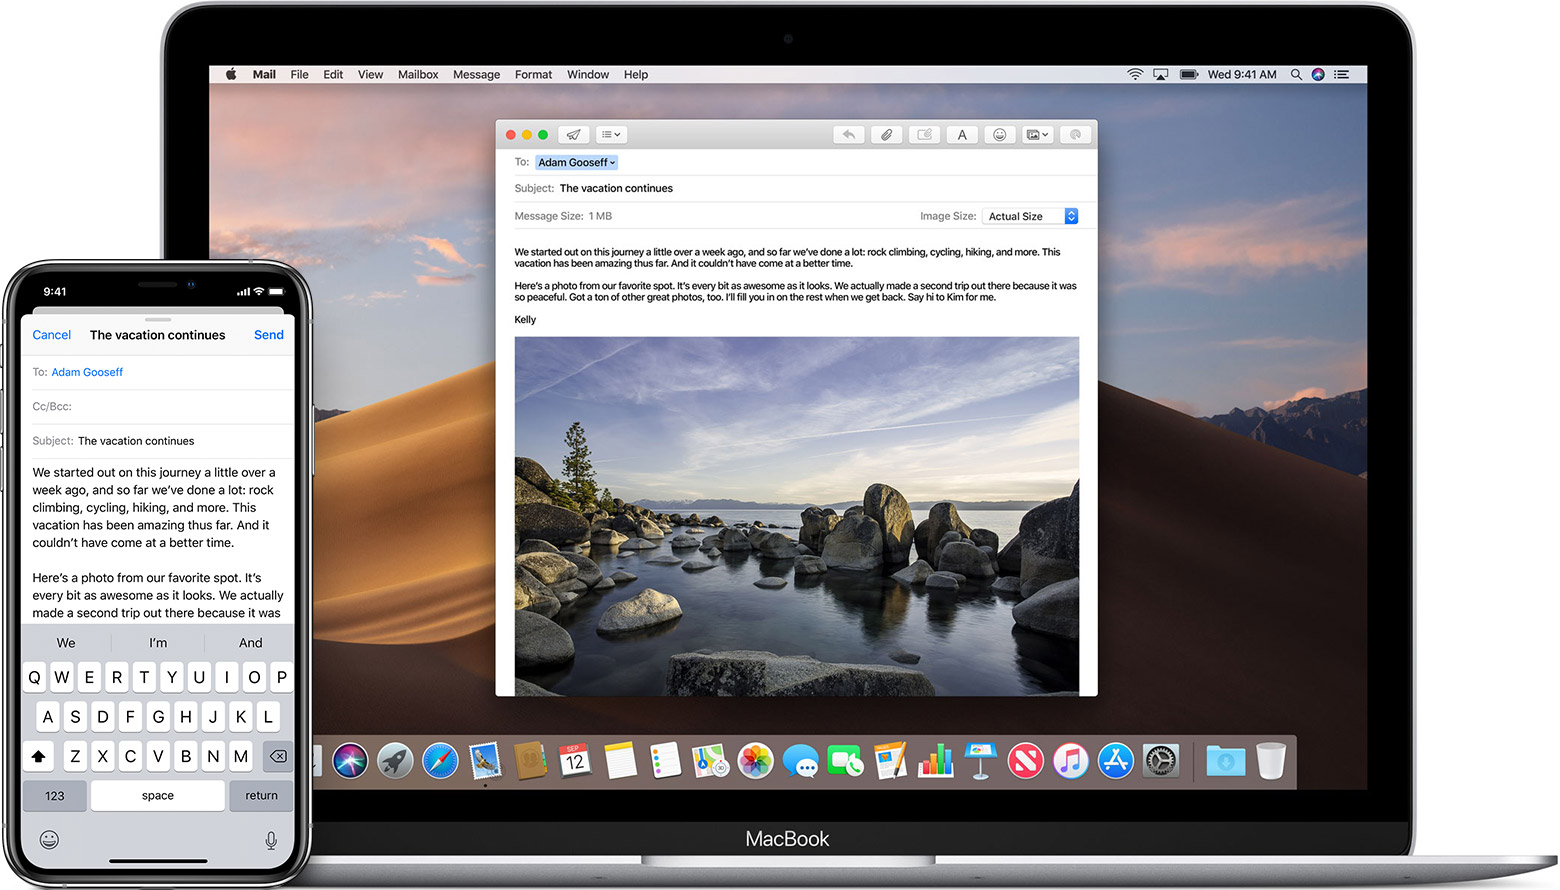 Use Handoff to continue a task on your other devices - Apple Support